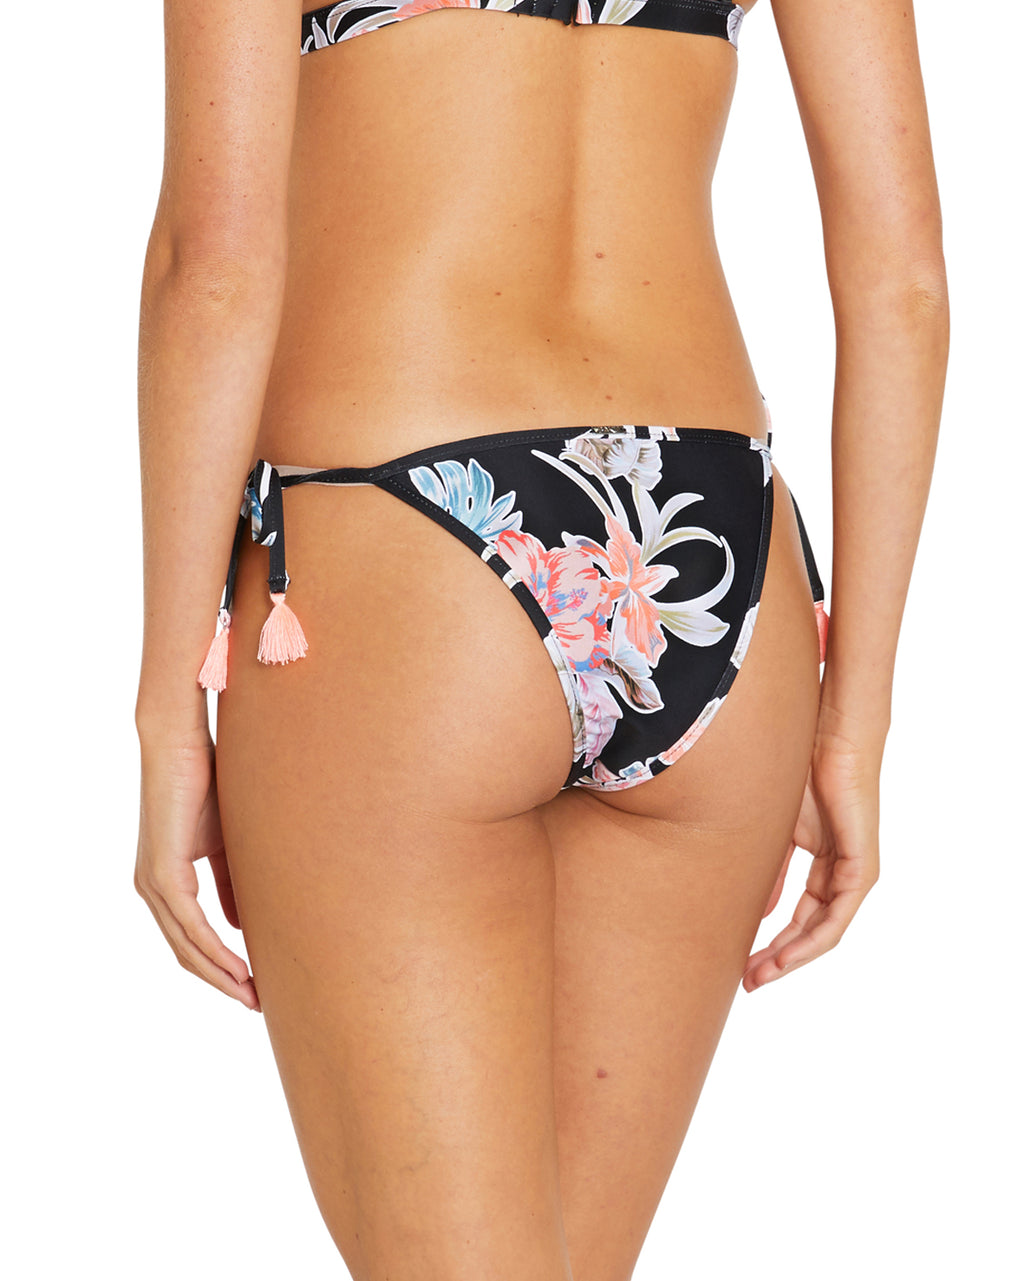 SOUTH PACIFIC RIO LOOPSIDE BIKINI PANT